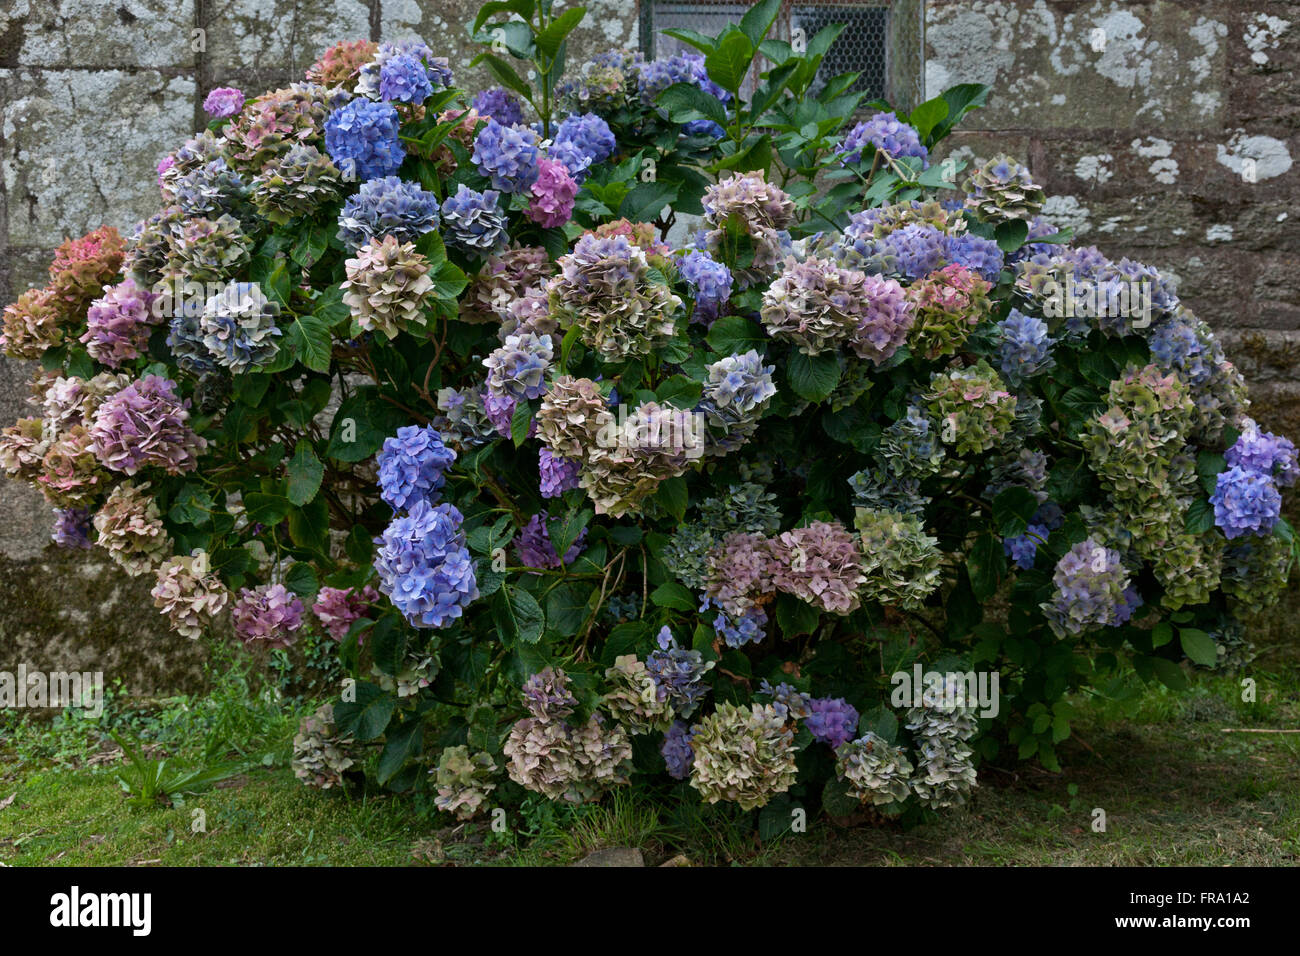 hydrangea bush with varicolored blossoms in front of medieval church wall - Stock Image